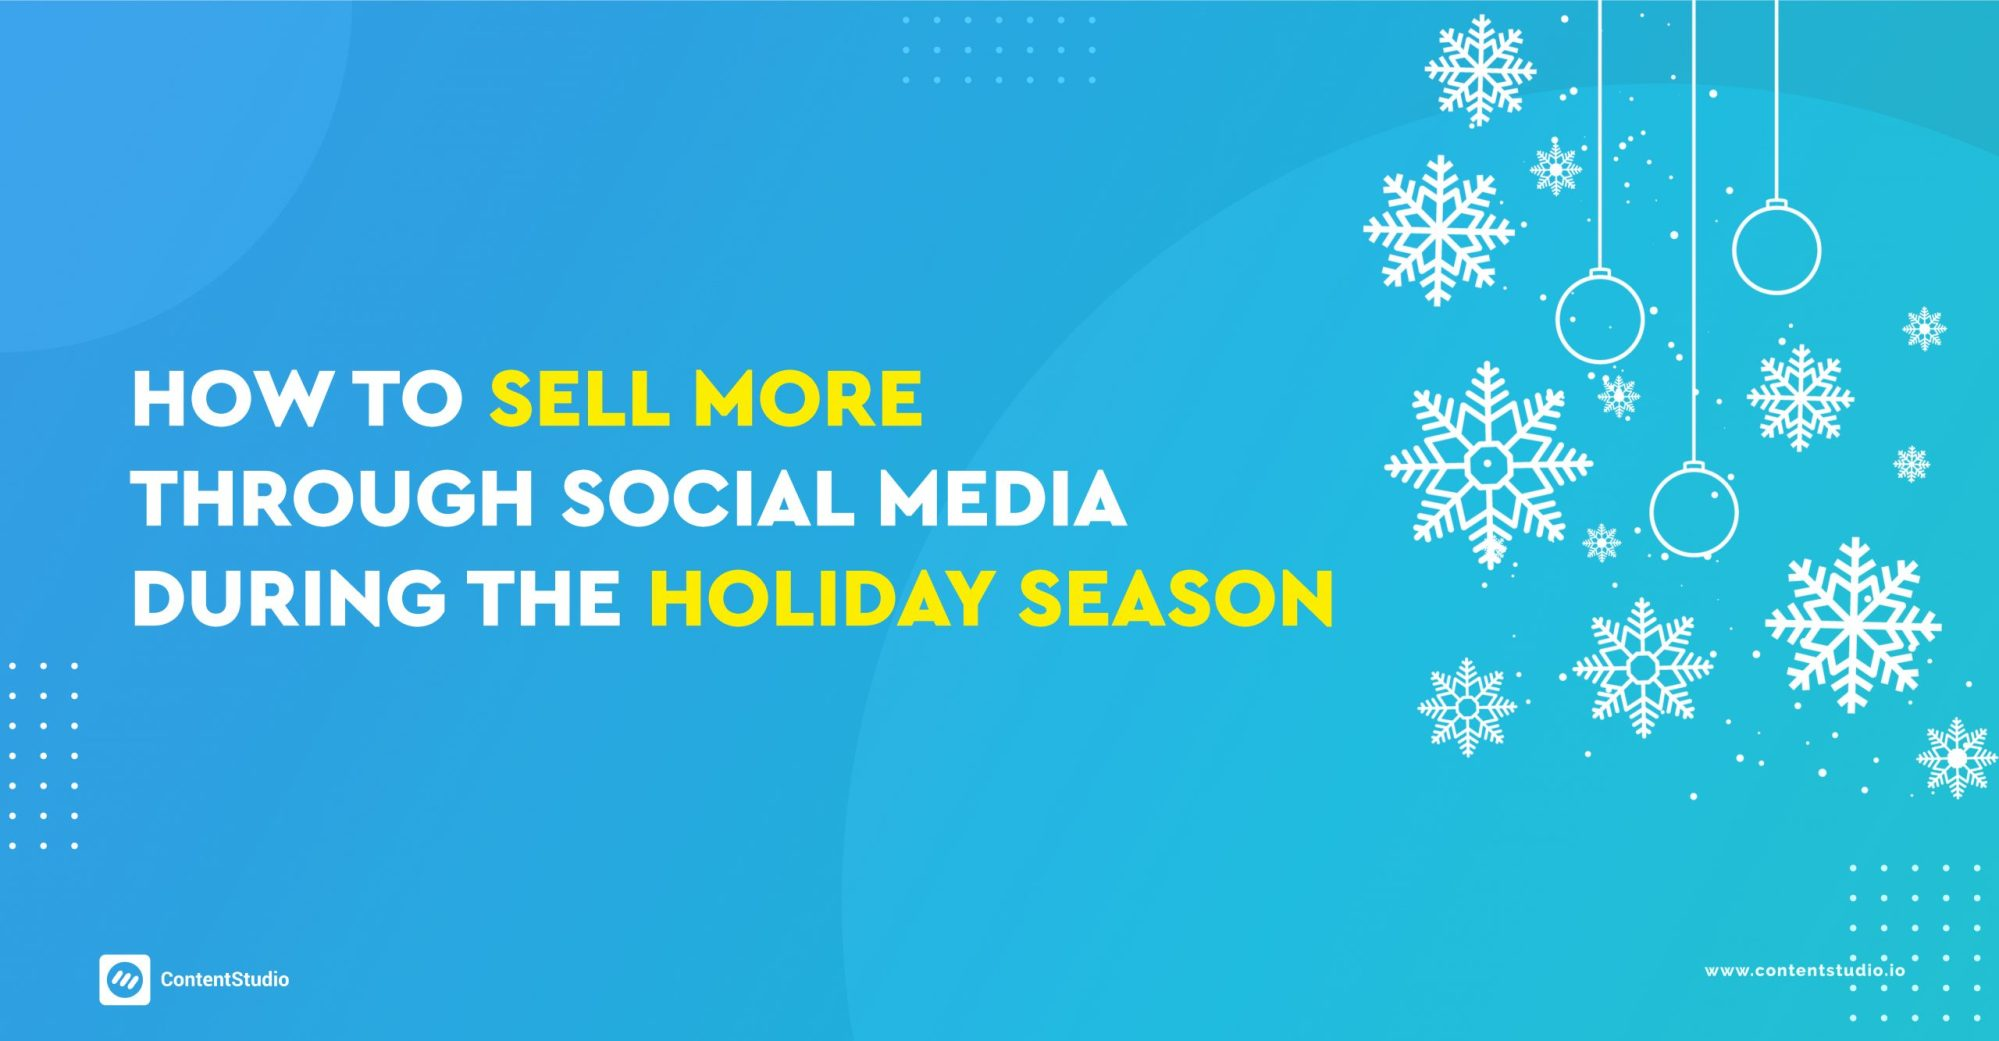 How to sell more on social media in holiday season